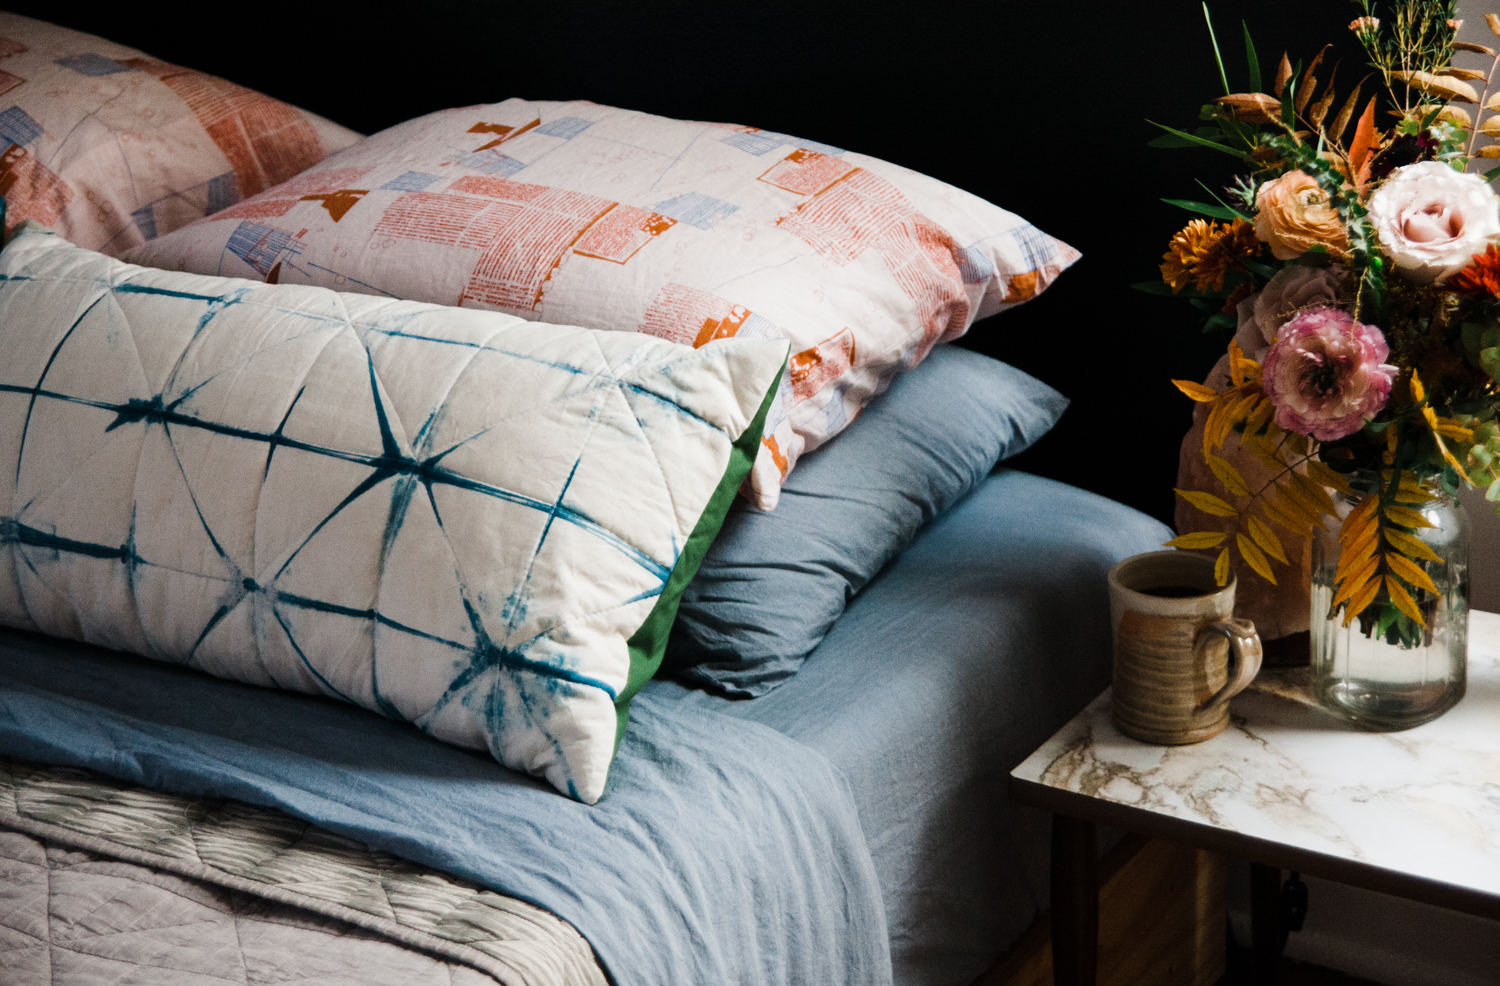 Much like making fire, creating your own warm, comforting and useful bedding is empowering. It also leaves you feeling your place in a long line of makers throughout history. It's a satisfying tradition to be a part of. That Carolyn Friedlander fabric is SO lovely. I marvel at the way it is geometric and organic all at once.